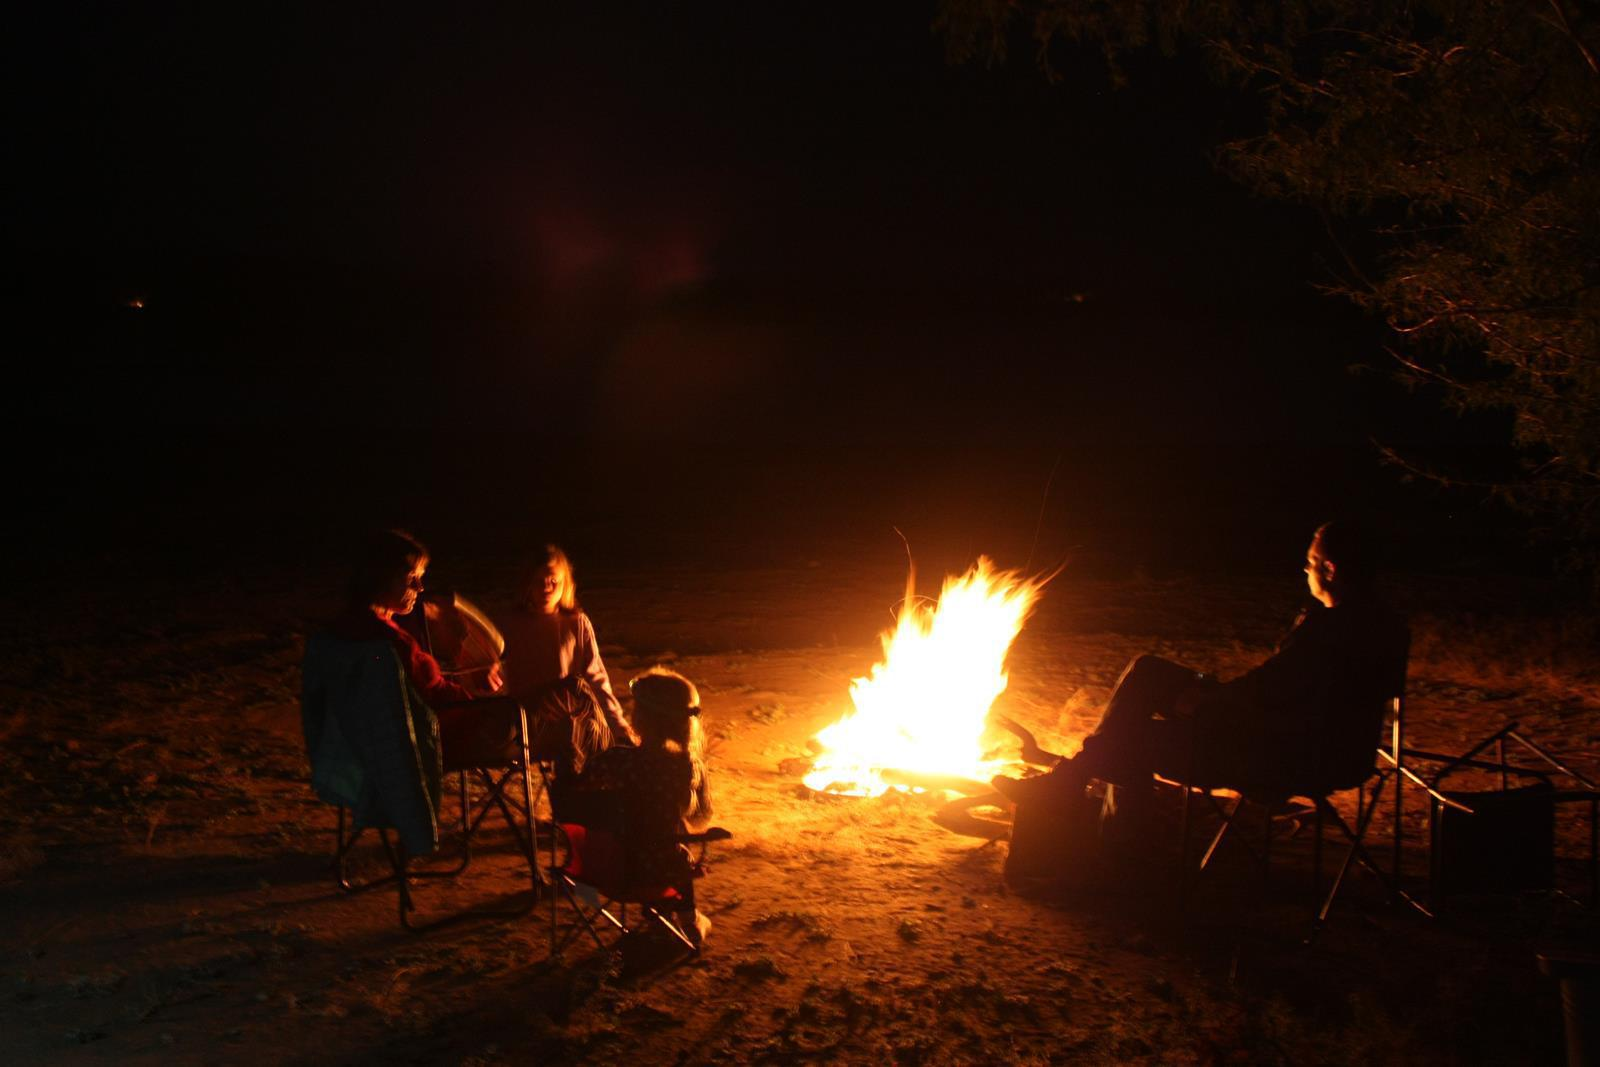 Sitting around the fire in the Vwasa Reserve in Malawi. (Photo: Karin Theron)